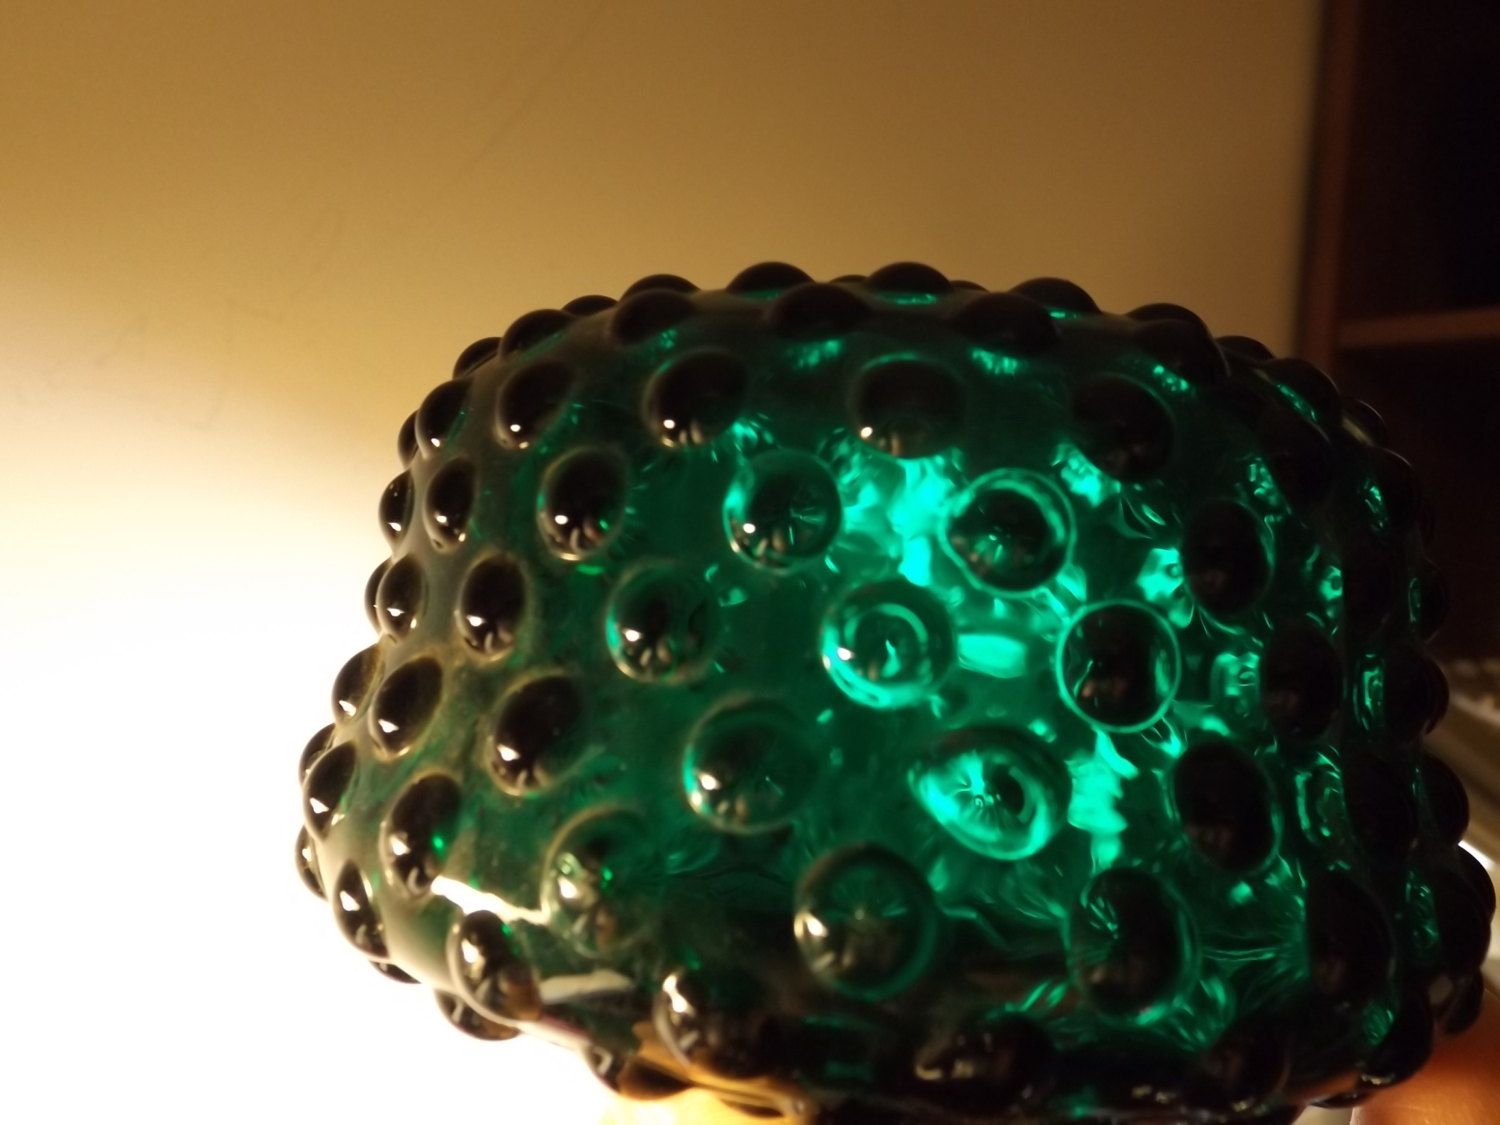 Antique hobnail glass green lamp part ornate lamp shade holder 3h antique hobnail glass green lamp part ornate lamp shade holder 3h oil aloadofball Images